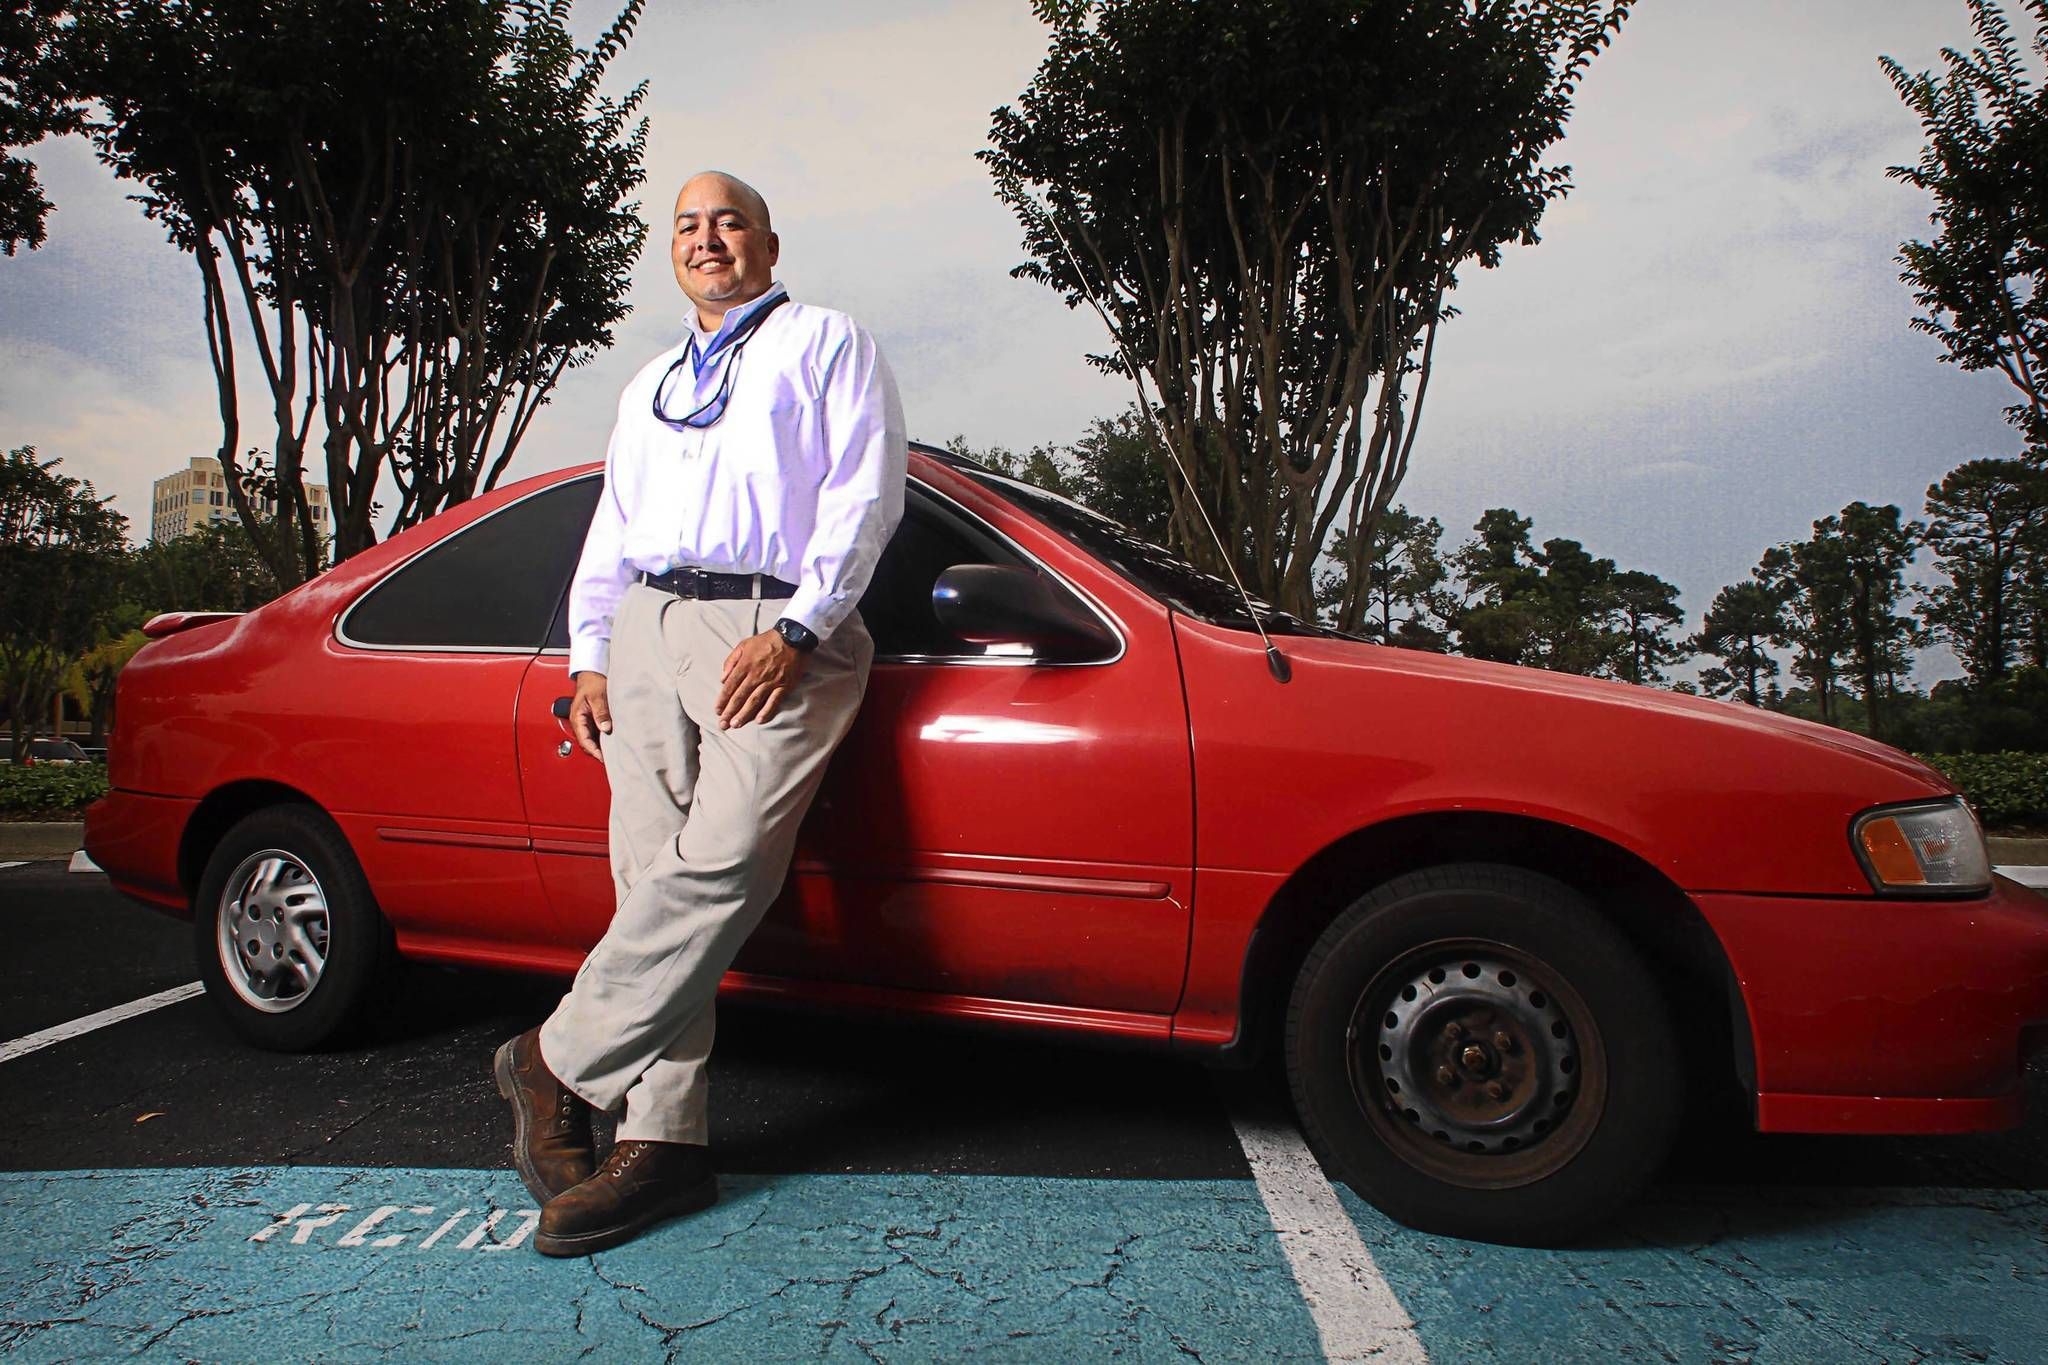 Jose Rodriguez poses near his older car, a 1995 Nissan 200SX with 295,000 miles on the odometer.